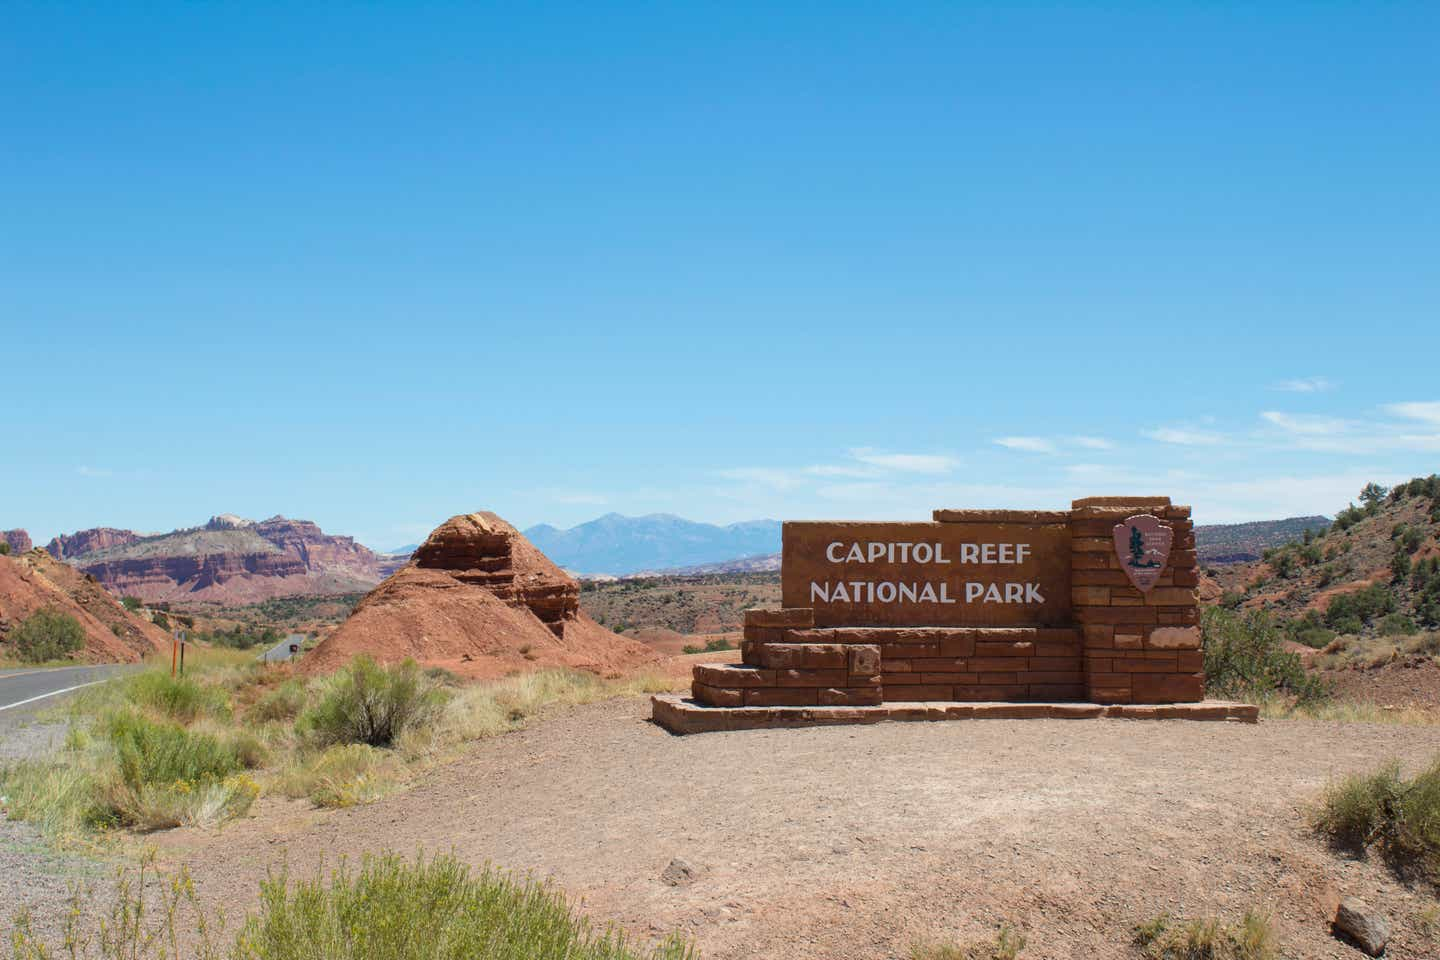 Capitol Reef National Park monument sign